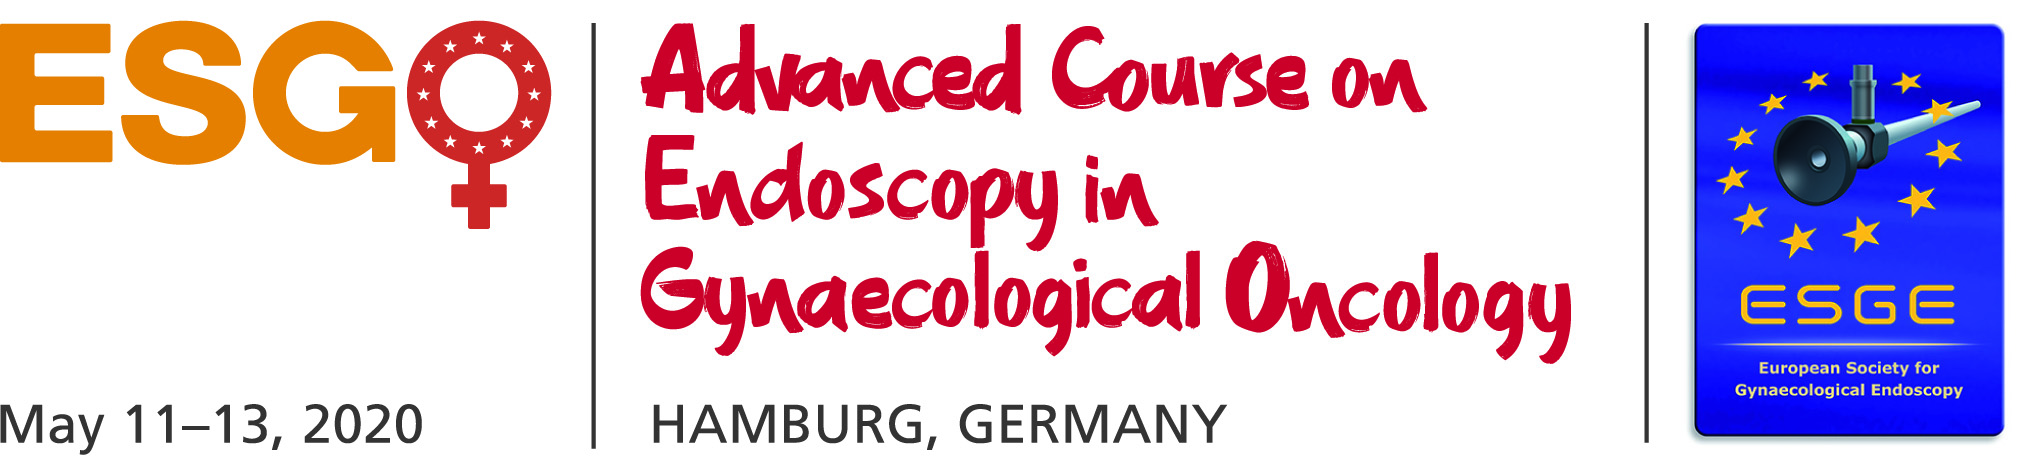 ESGO Advanced Course on Endoscopy in Gynaecological Oncology.kr